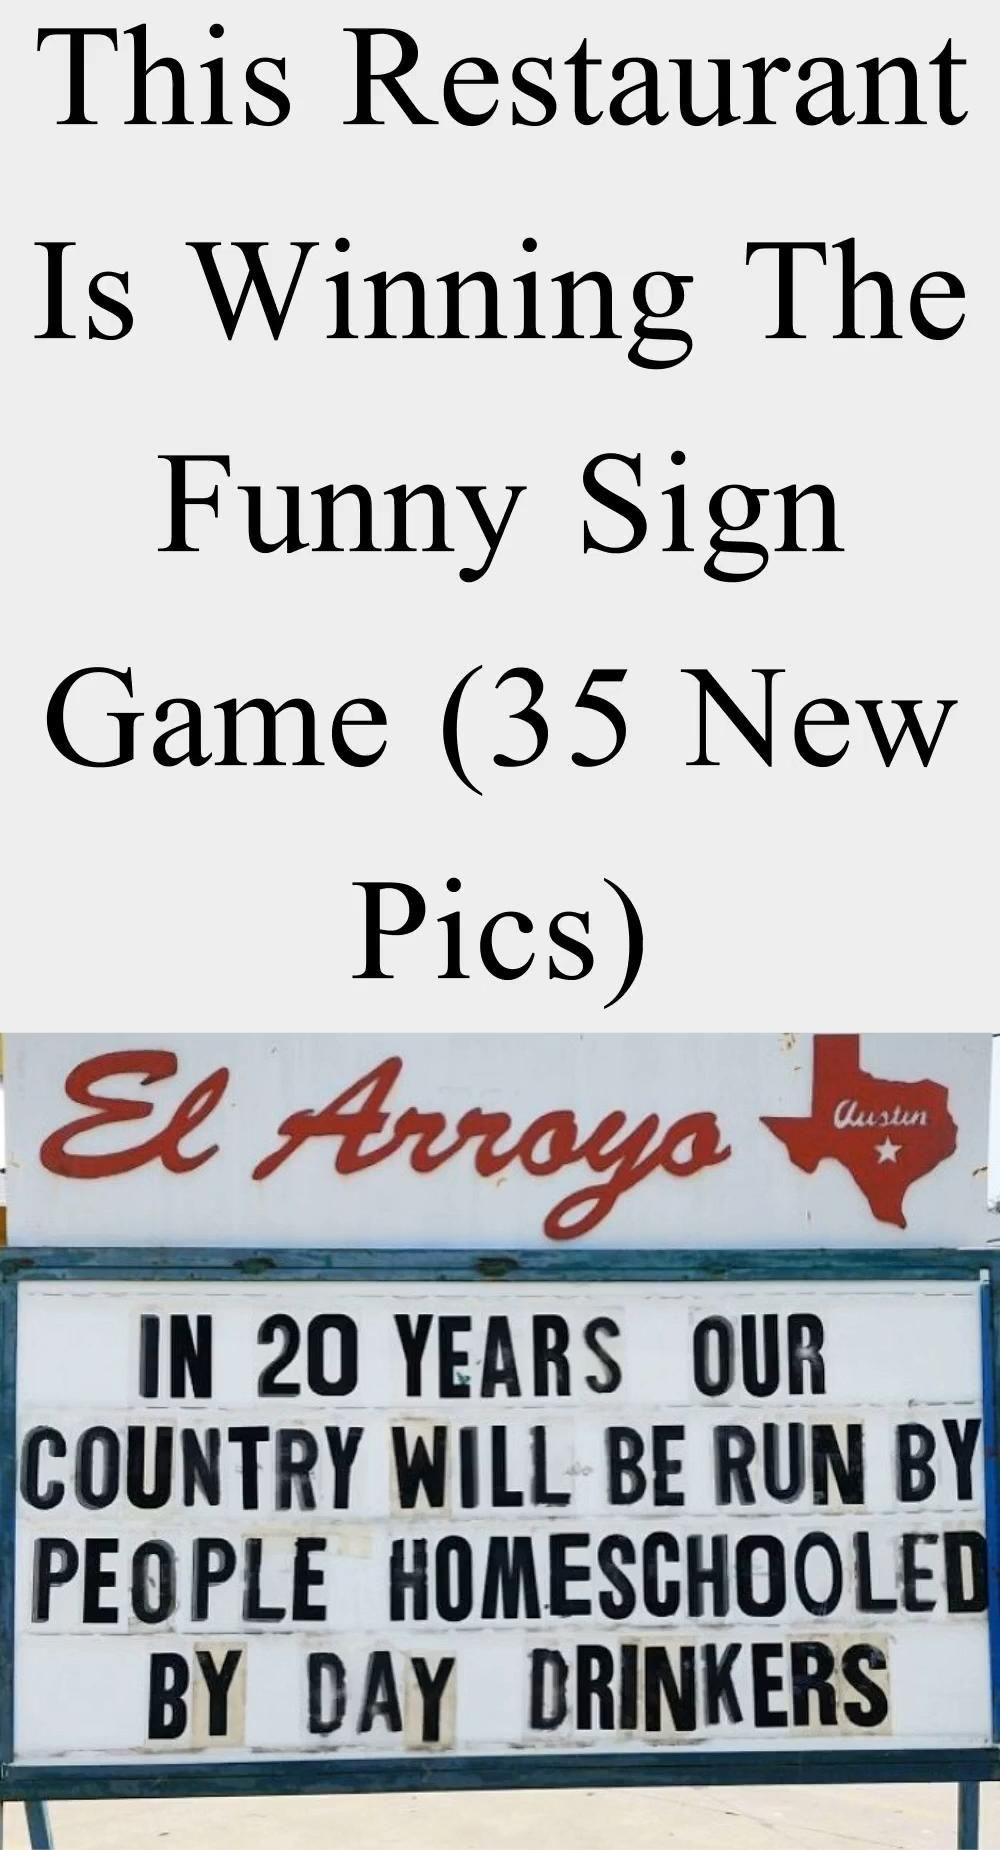 This Restaurant Is Winning The Funny Sign Game 35 New Pics Couple Quotes Funny Funny Game Happy Quot In 2020 Funny Quotes Sarcastic Quotes Funny Sarcastic Quotes